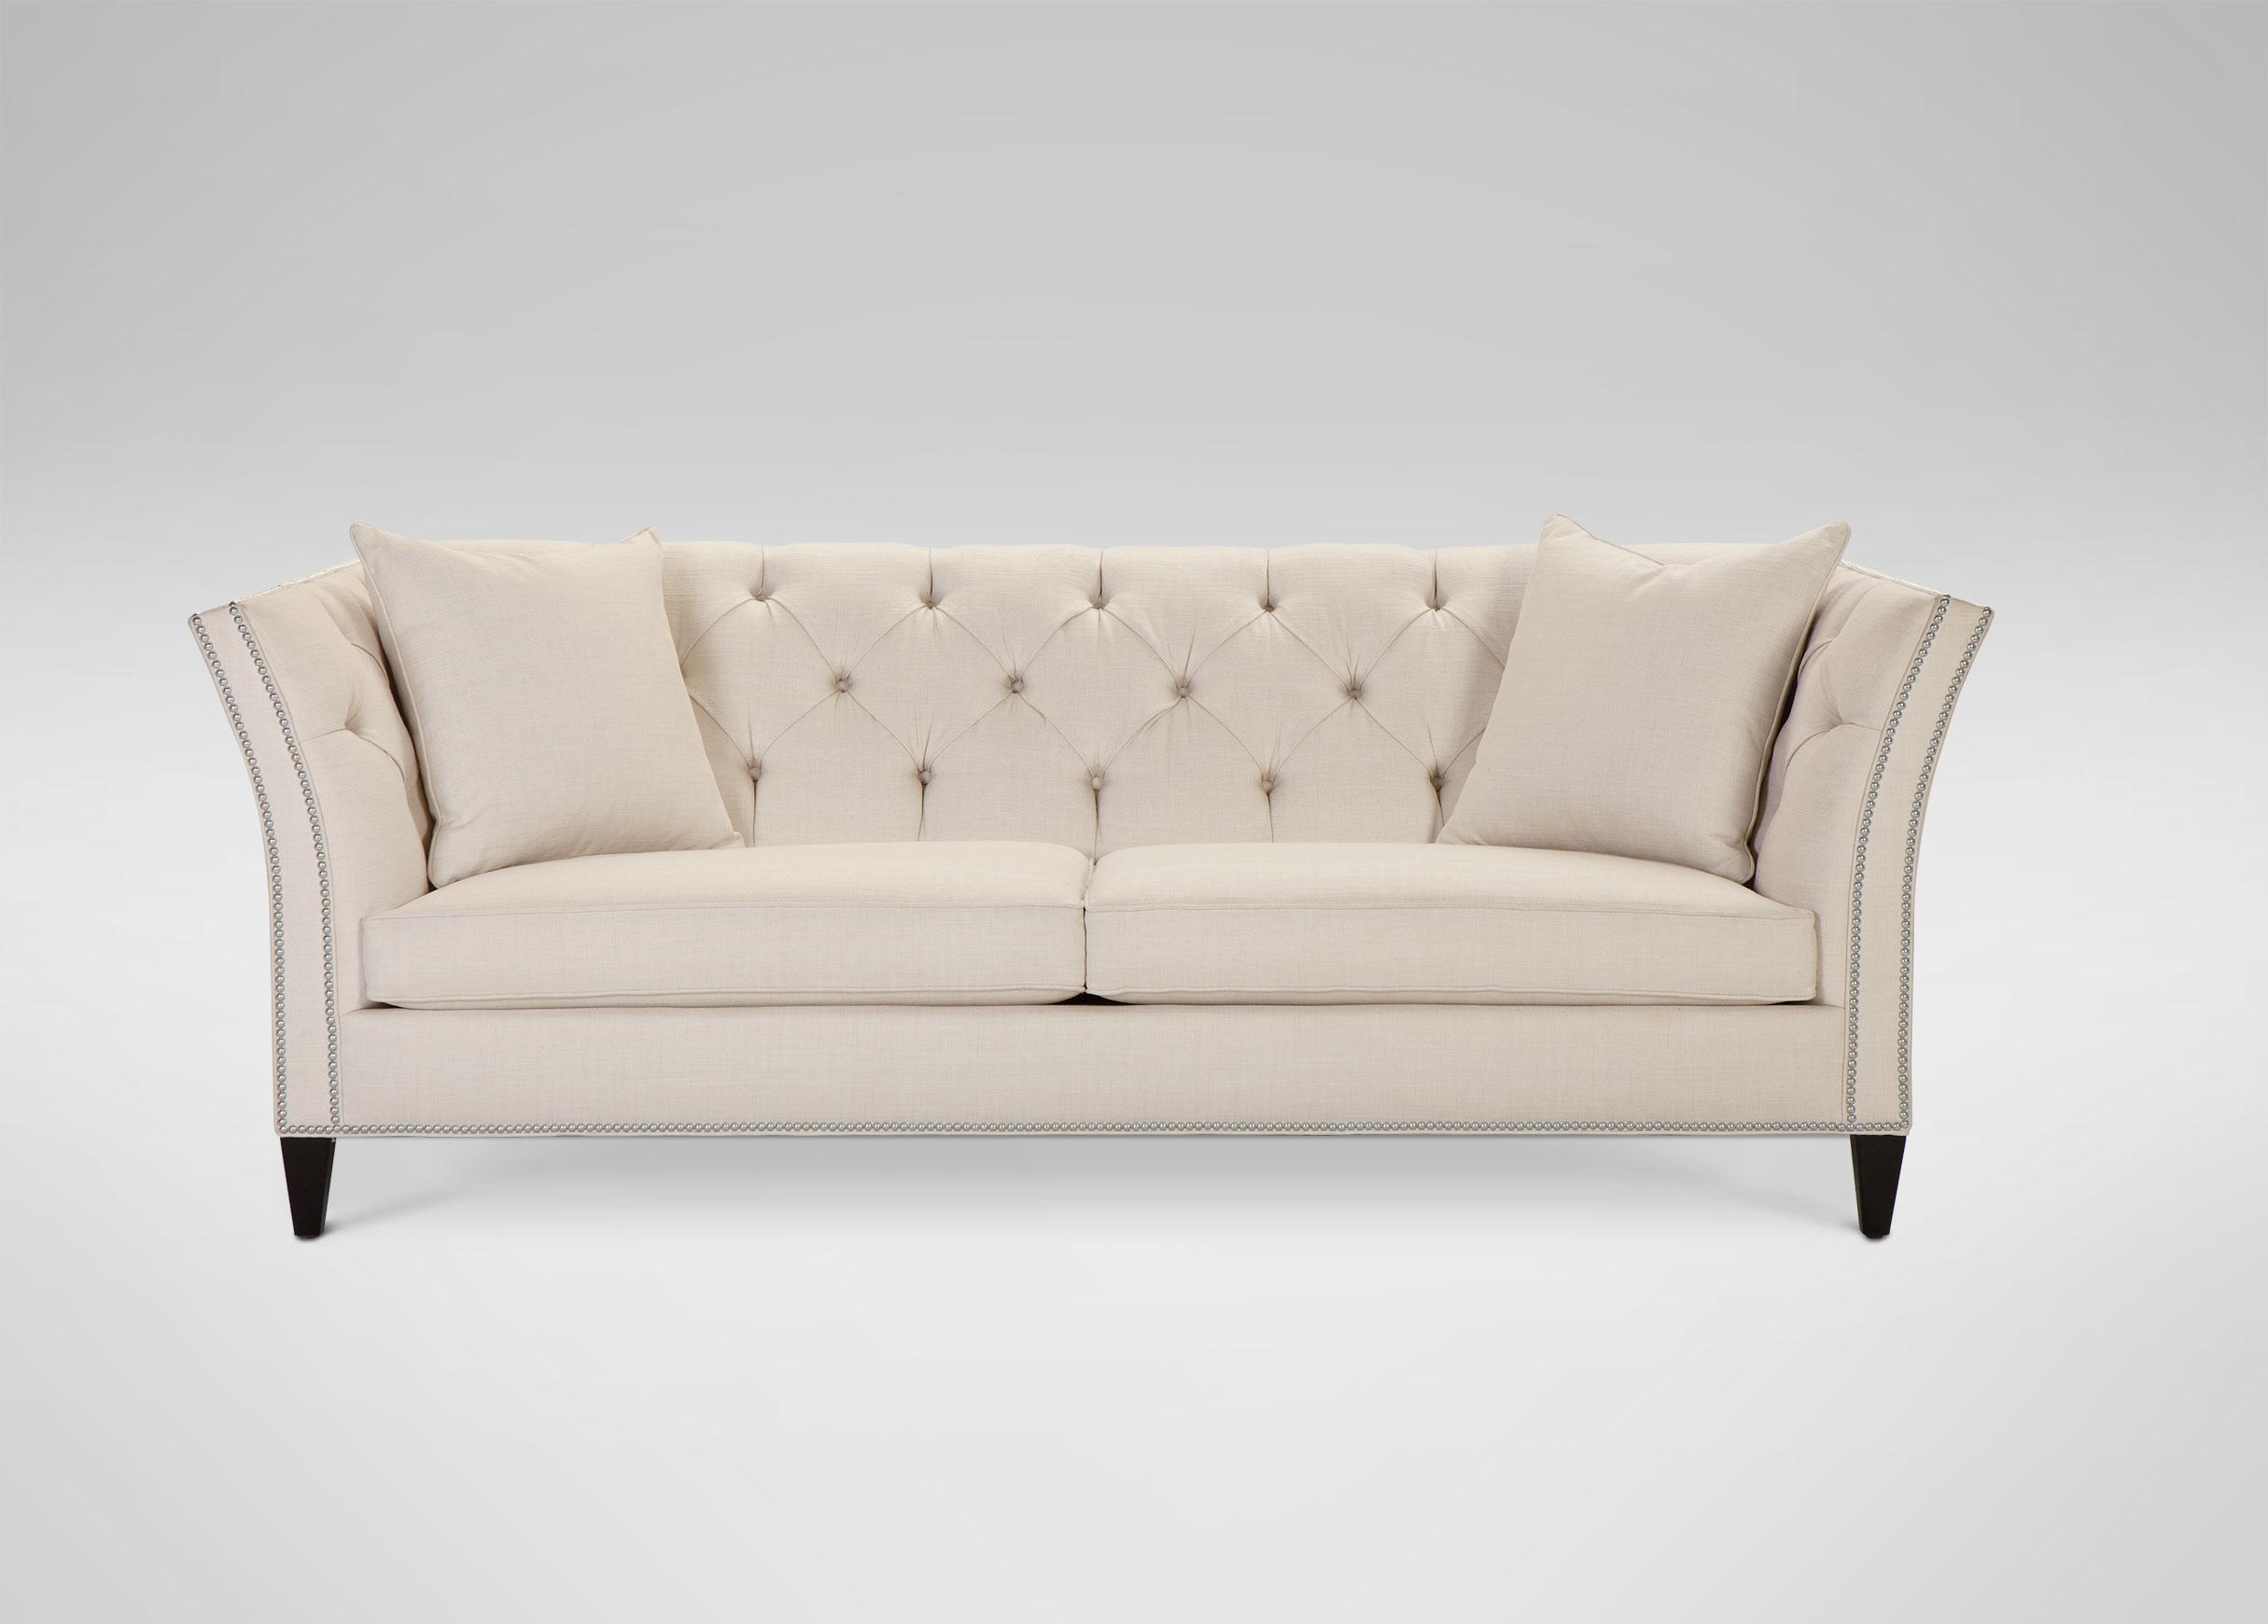 Fabric Chesterfield Sofas | Tehranmix Decoration Throughout Ethan Allen Chesterfield Sofas (View 13 of 20)